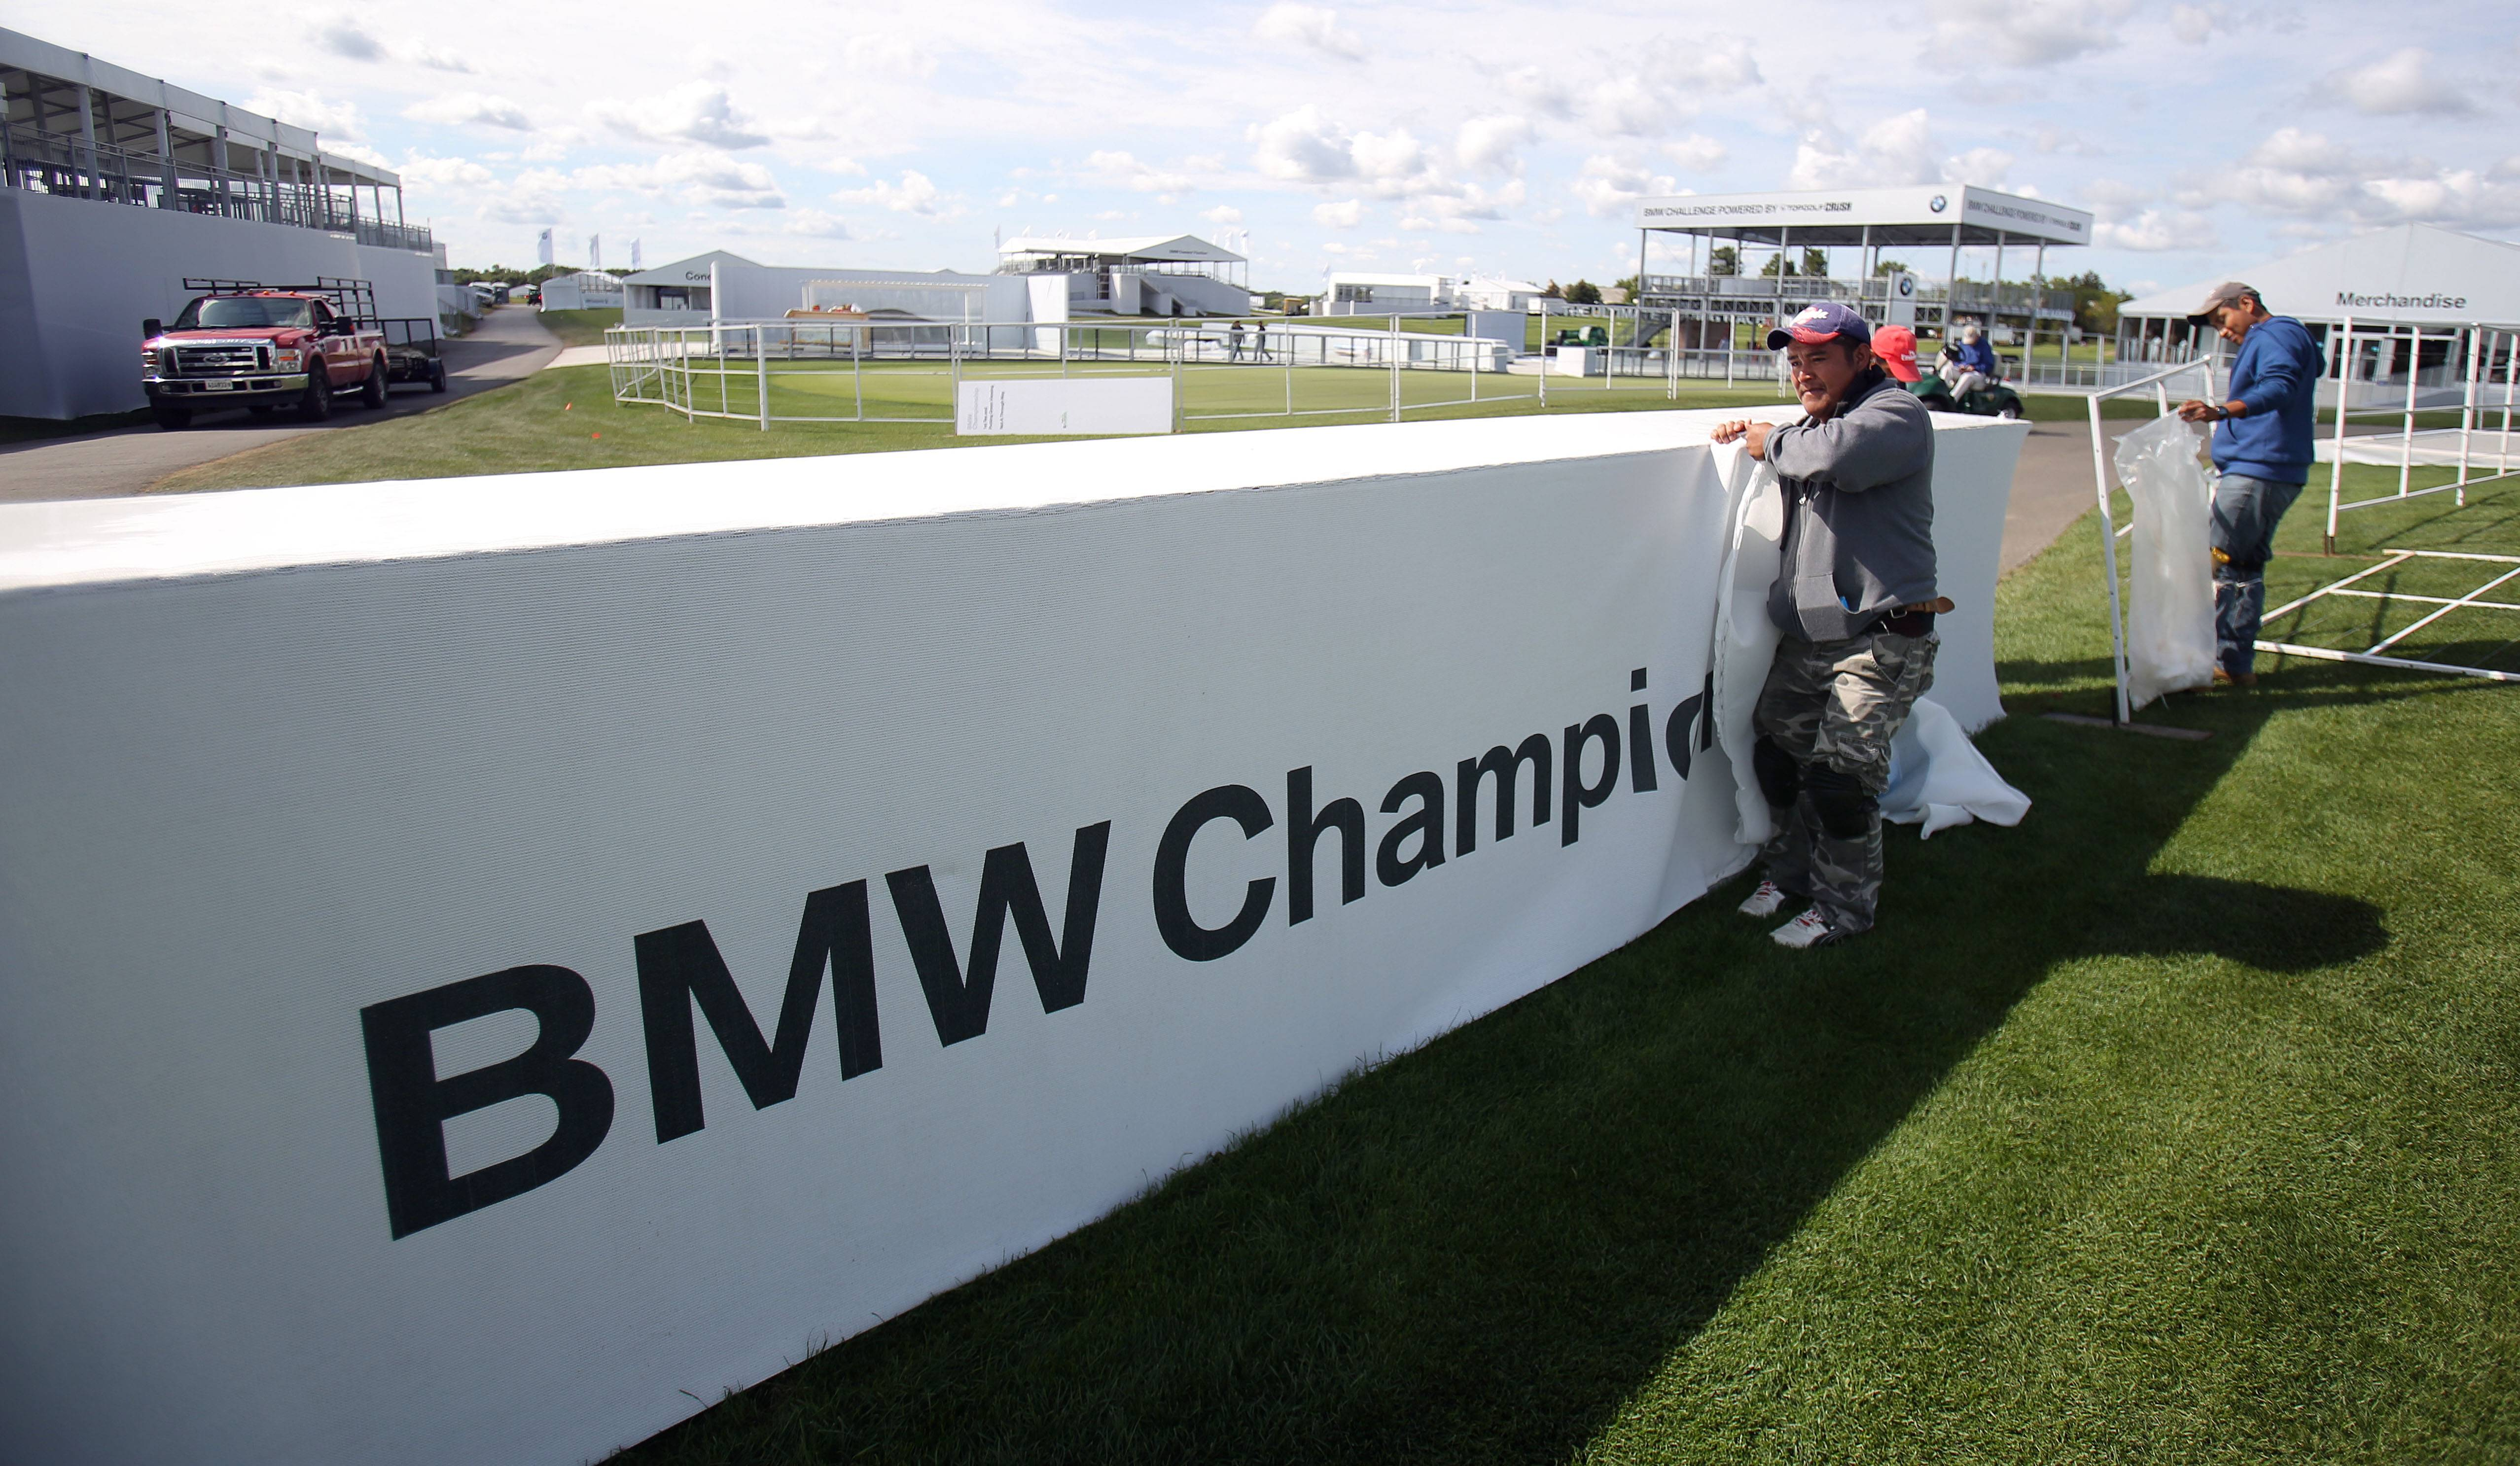 Gustino Rodriguez puts up a sign last week in preparation for this week's BMW Championship golf tournament at Conway Farms in Lake Forest.